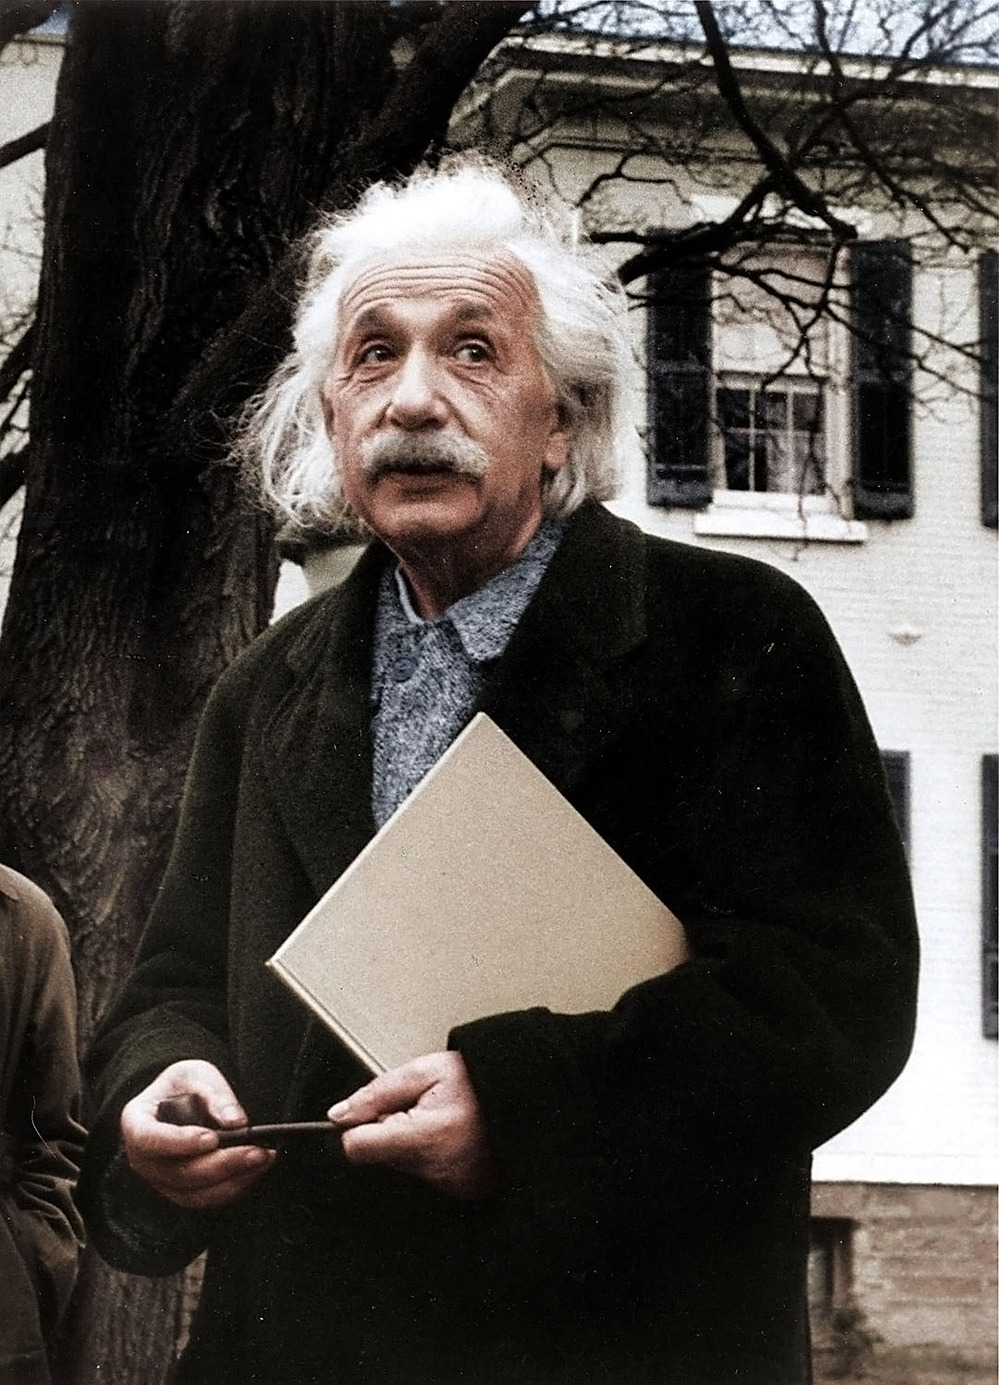 kafkasapartment: